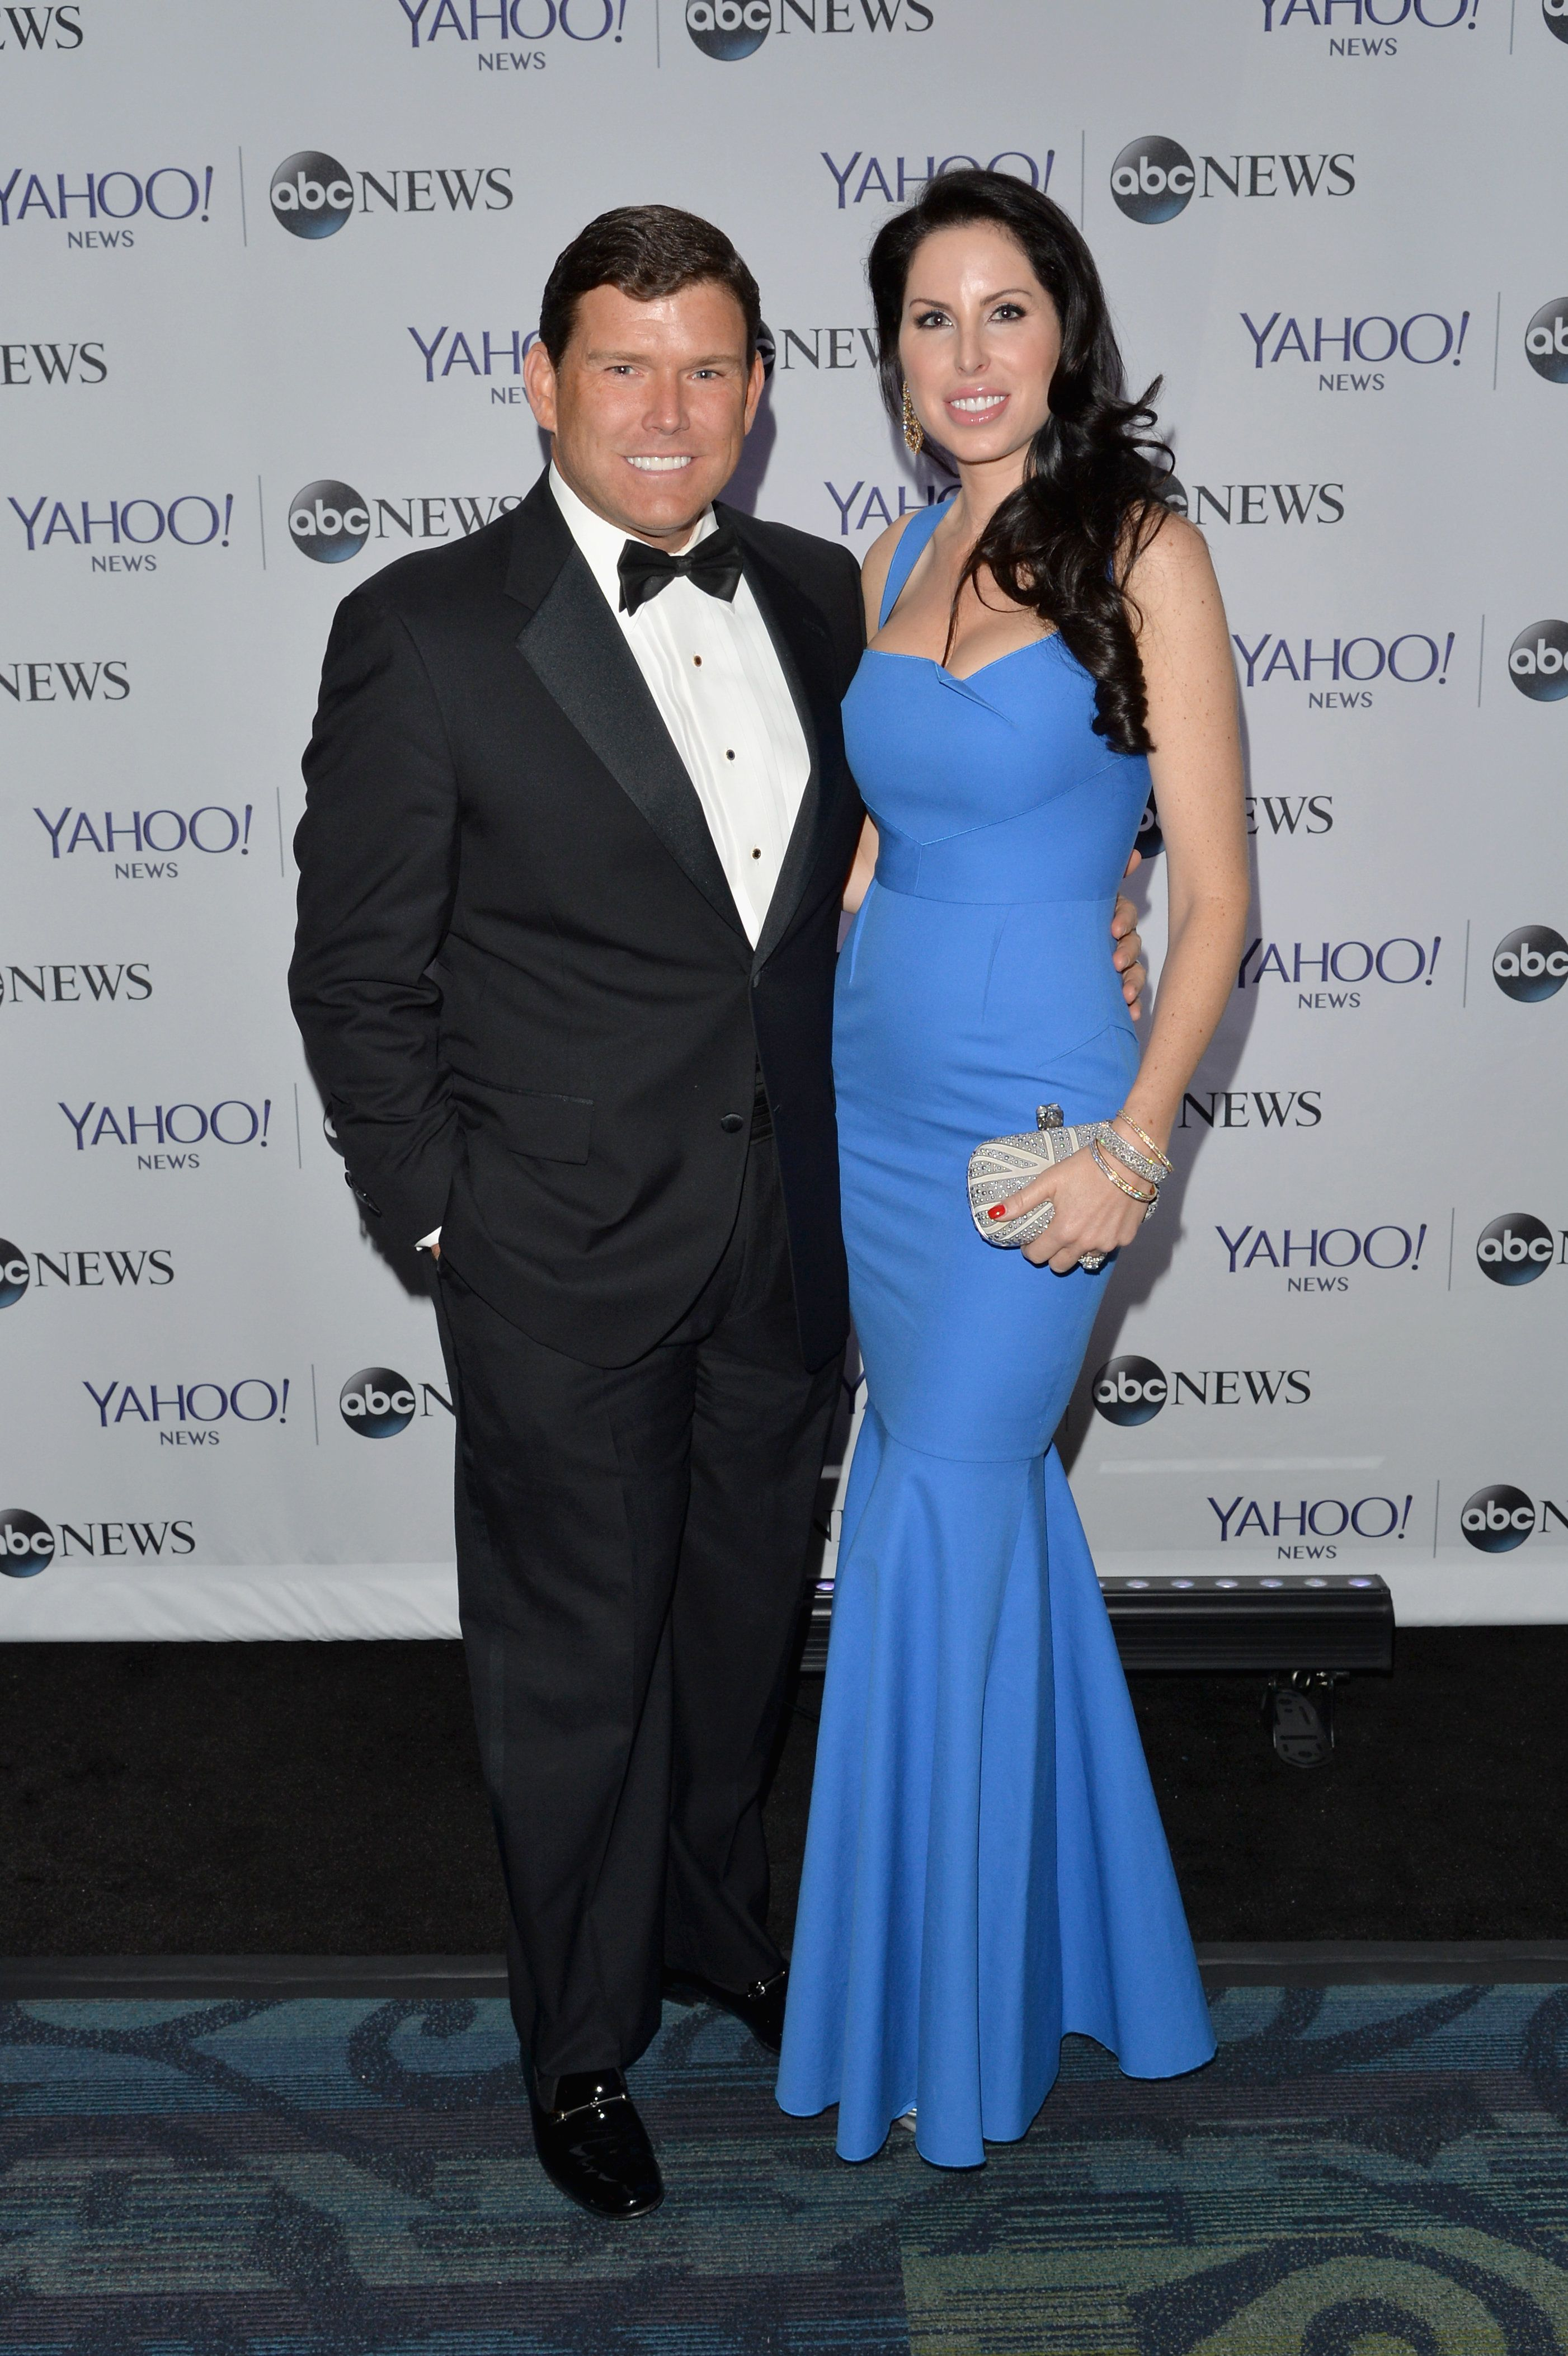 <p>Fox News anchor Bret Baier (Photo by Andrew H. Walker/Getty Images for Yahoo News)</p>